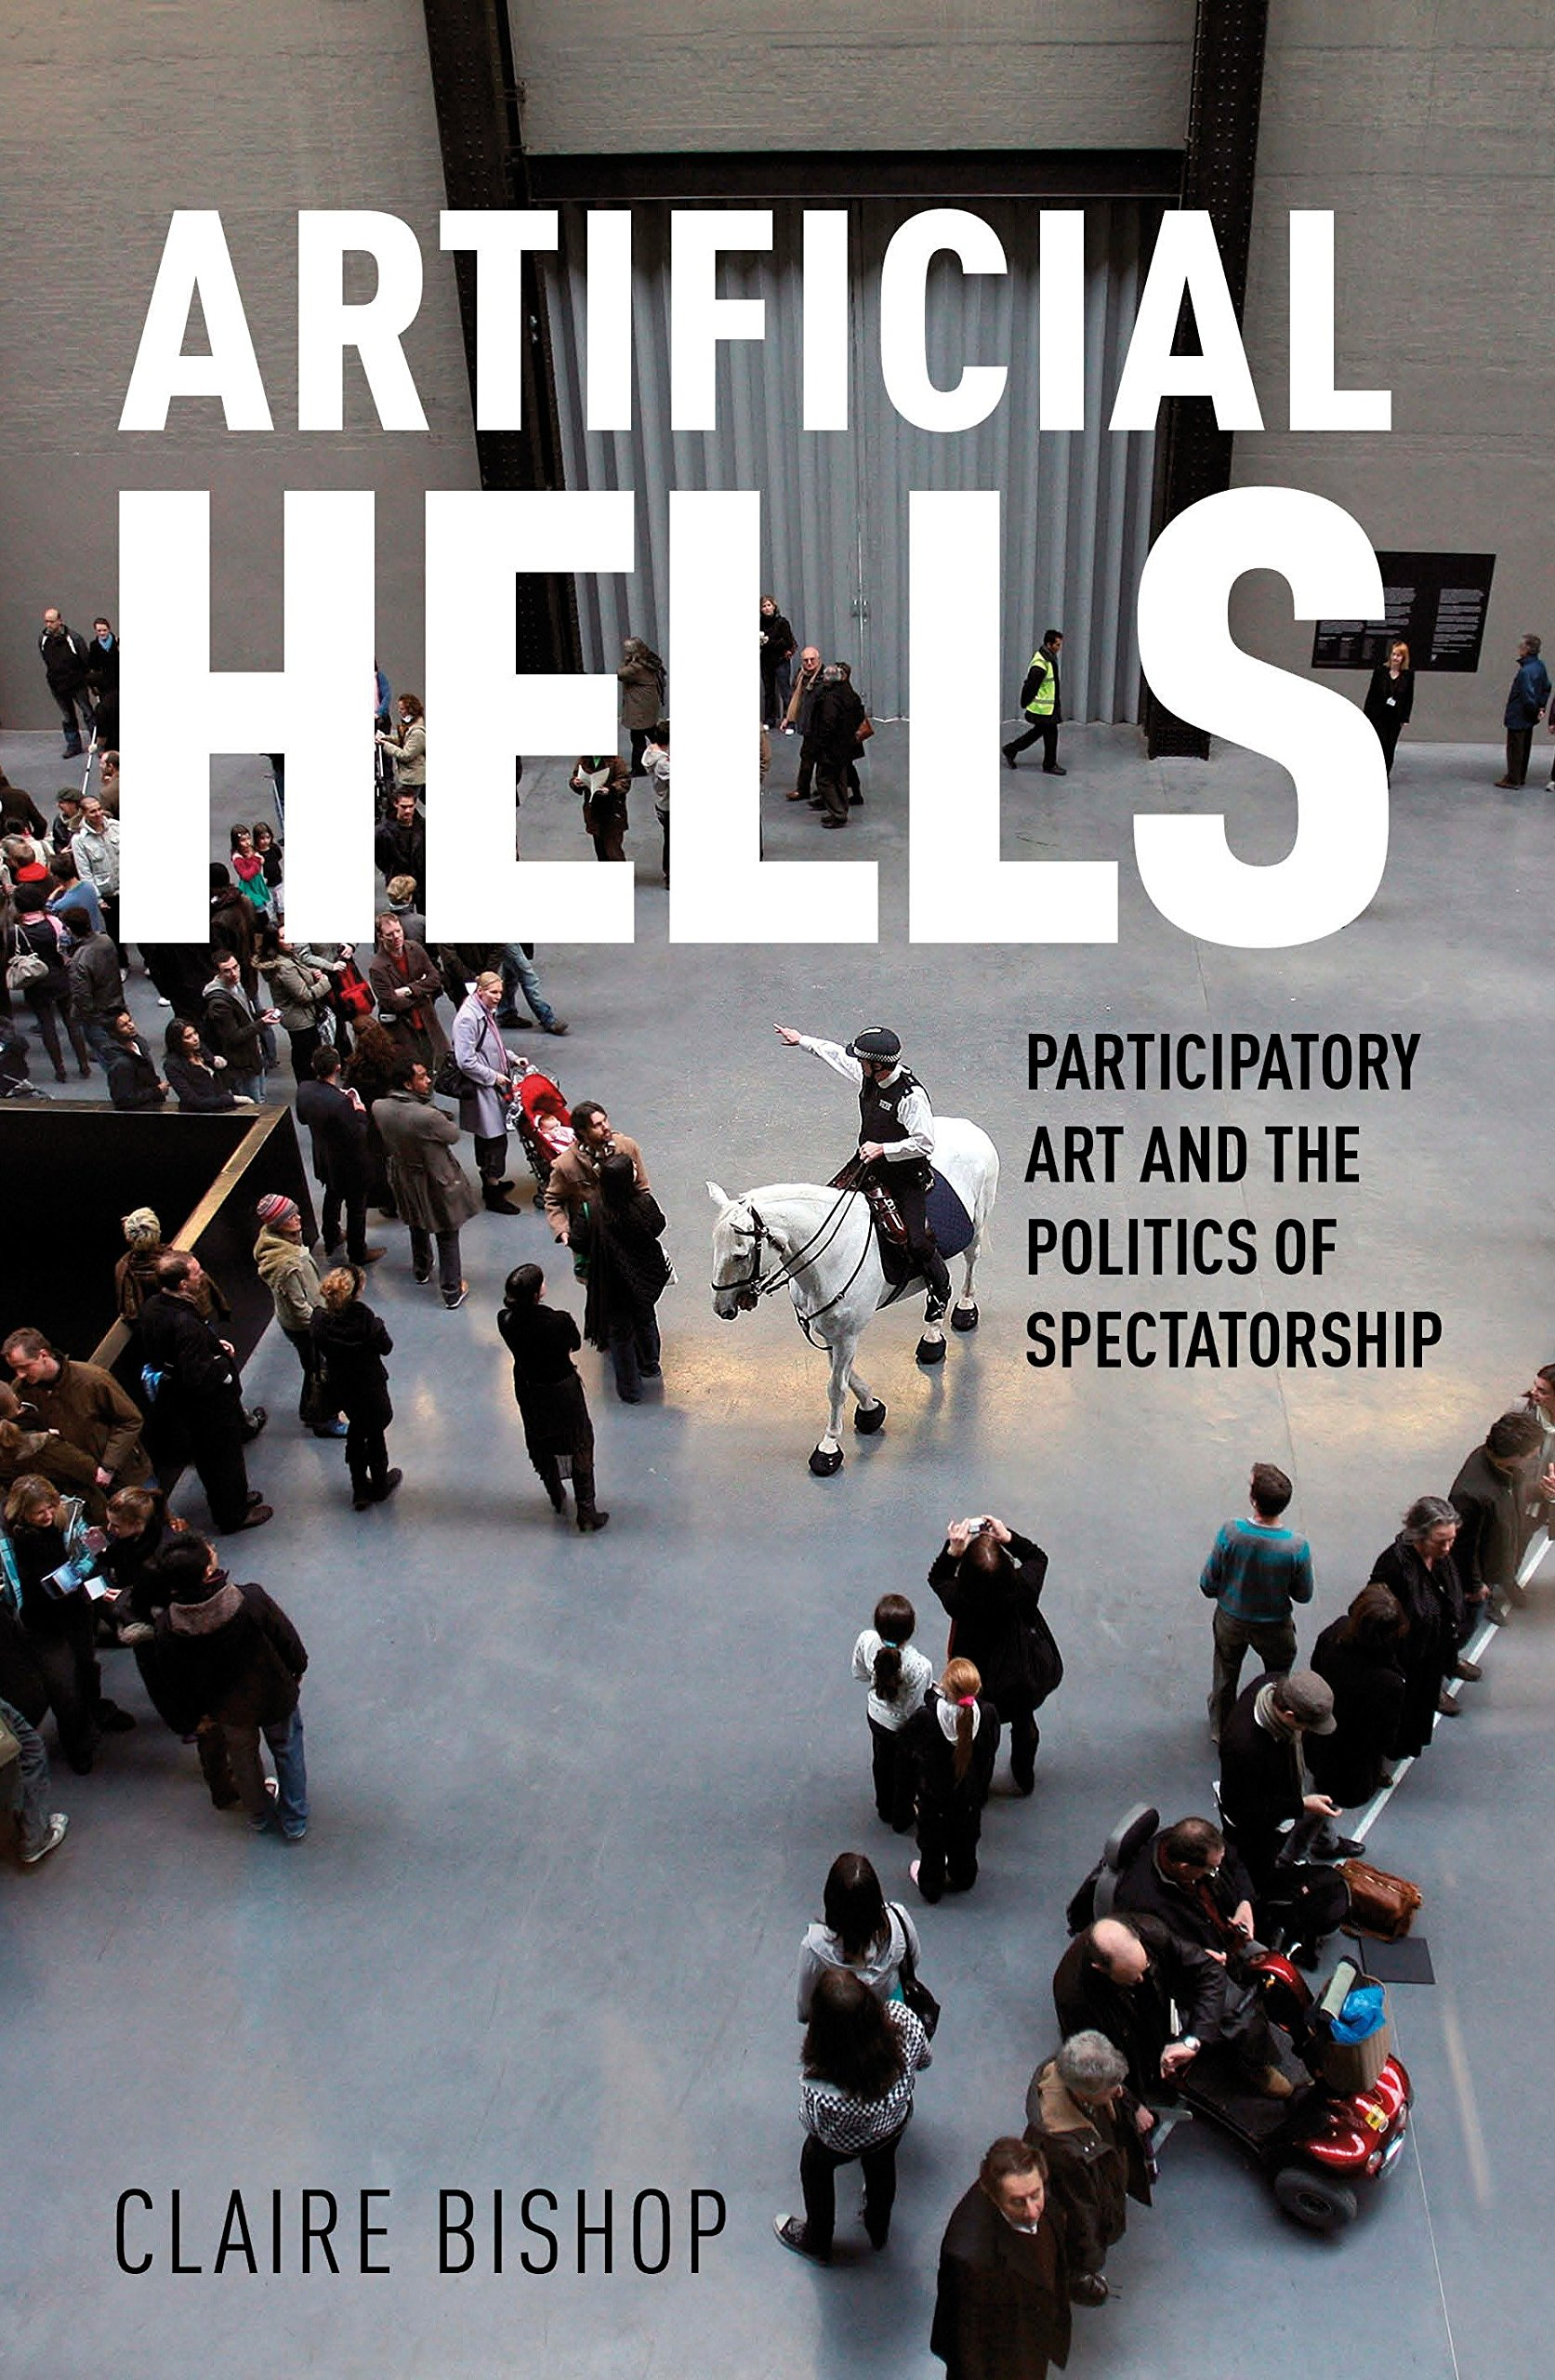 Artificial hells participatory art and the politics of artificial hells participatory art and the politics of spectatorship claire bishop 8601404493393 amazon books fandeluxe Choice Image